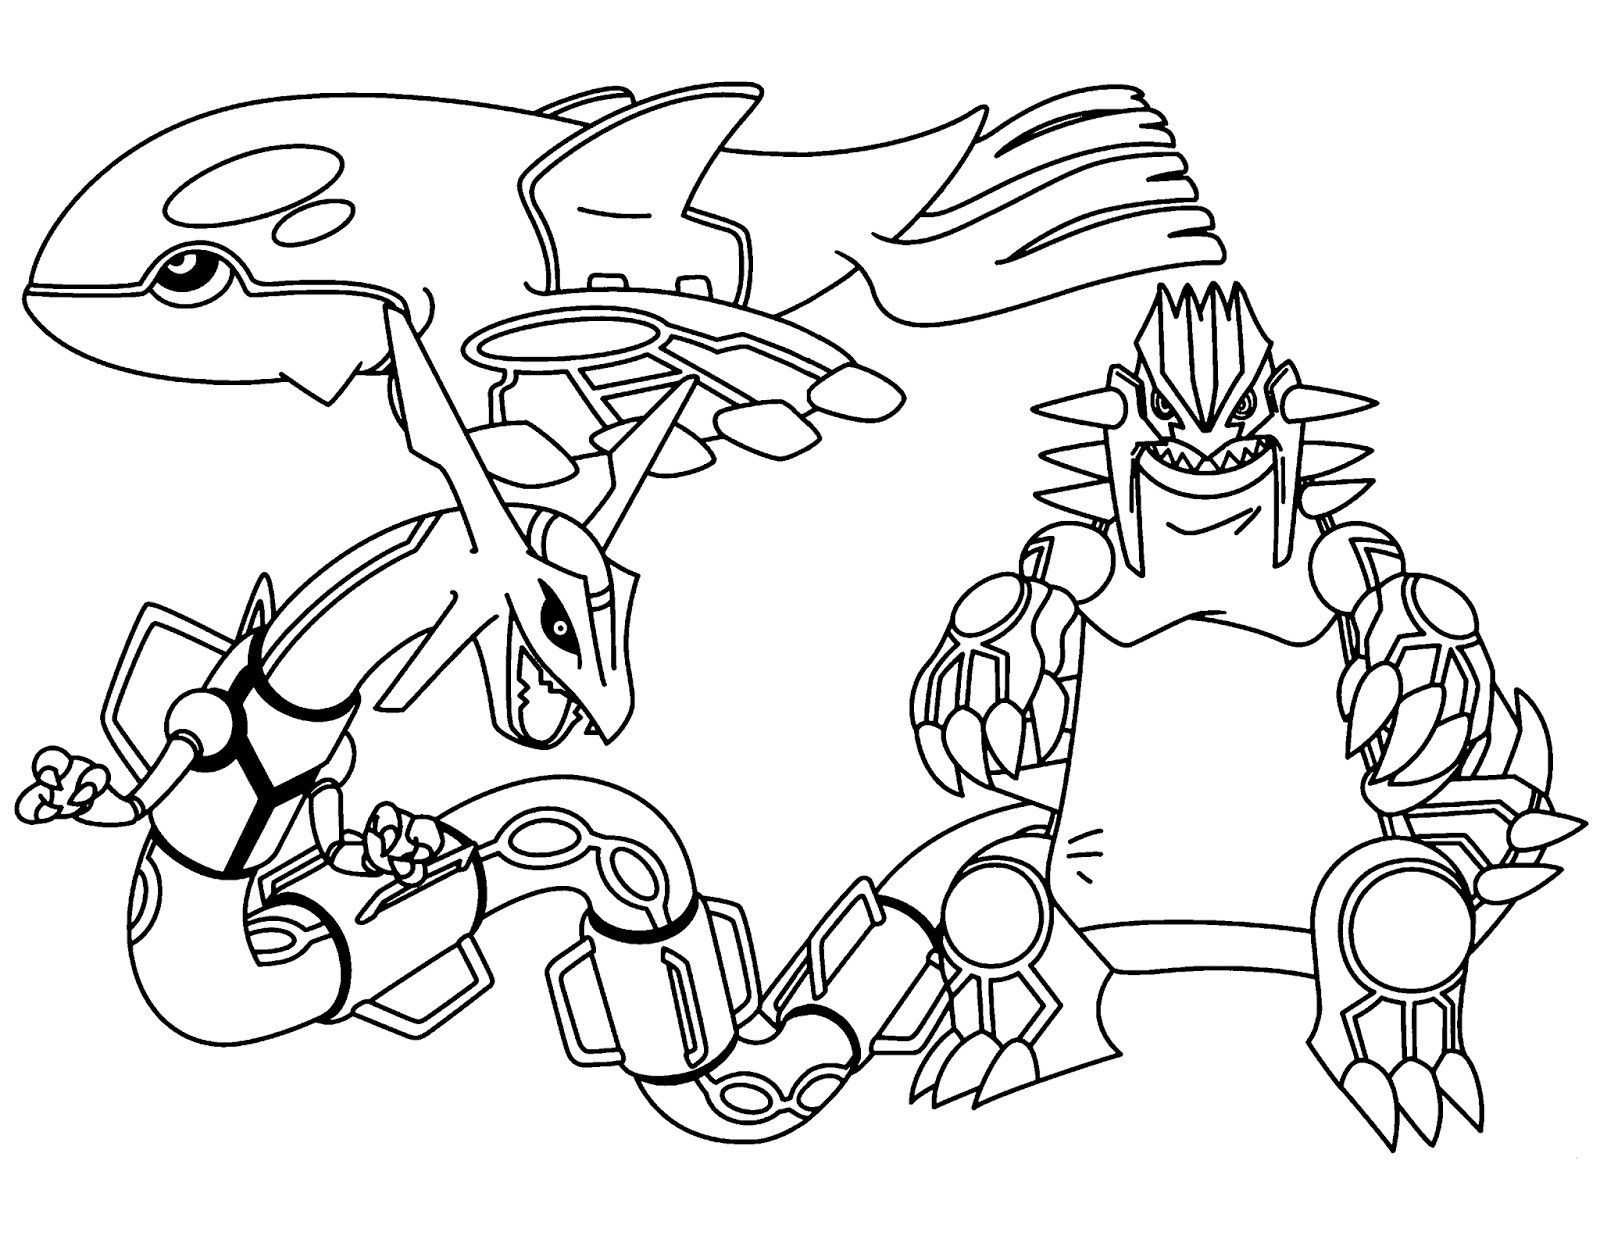 Legendary Pokemon Coloring Pages Rayquaza Through The Thousand Pictures On Line About Legendary Pokemon Coloring Pages Cartoon Coloring Pages Coloring Pages